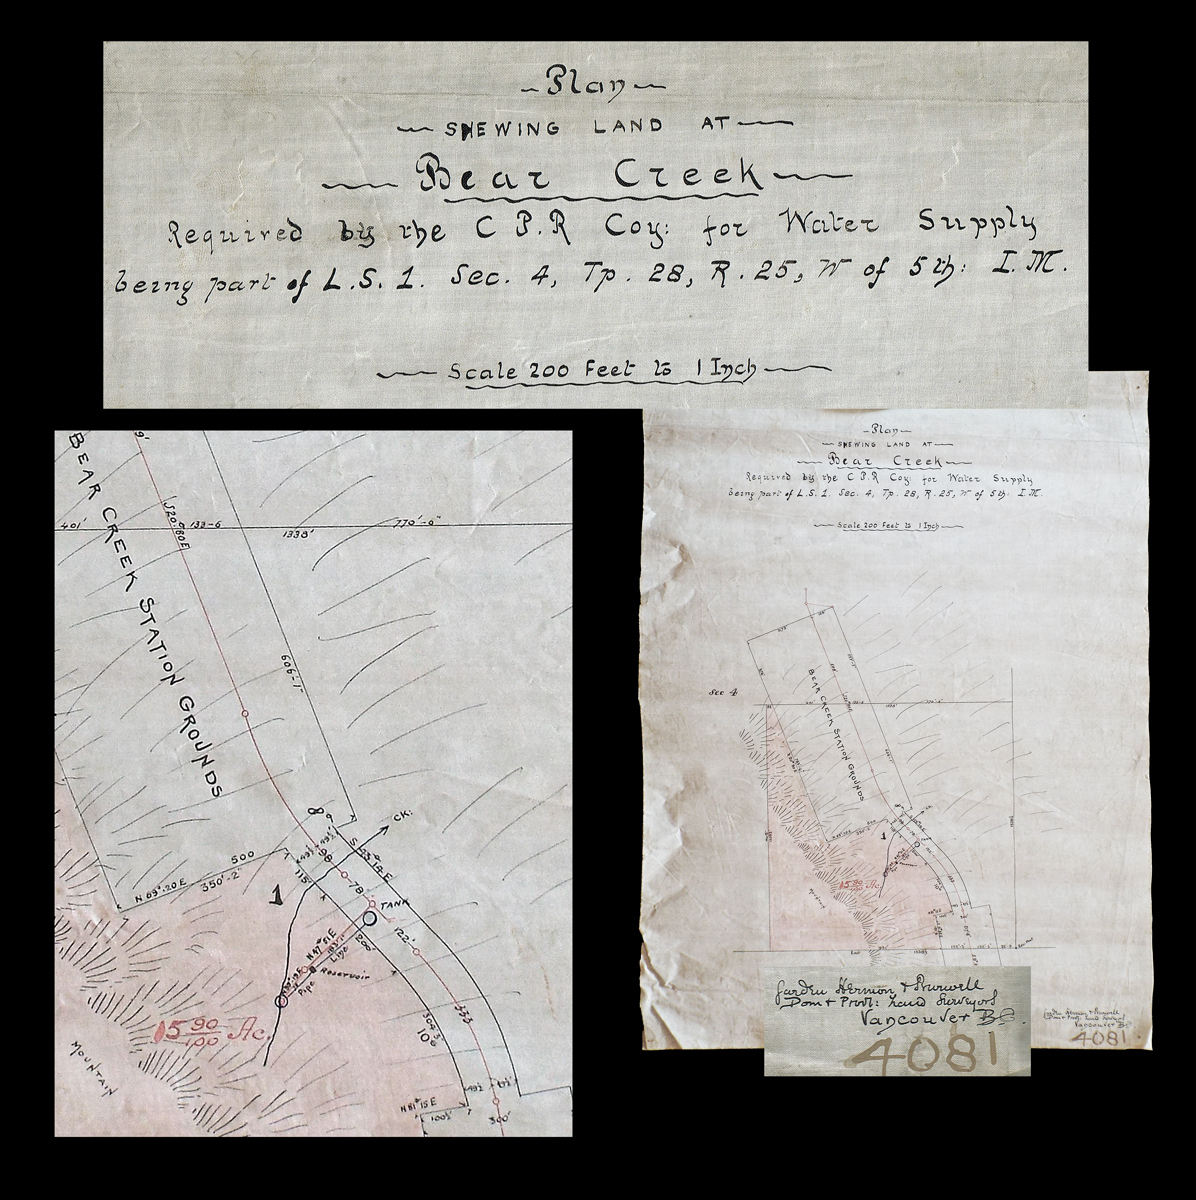 Wondrous Plan Shewing Land At Bear Creek Required By The C P R Co For Schematic Wiring Diagrams Phreekkolirunnerswayorg